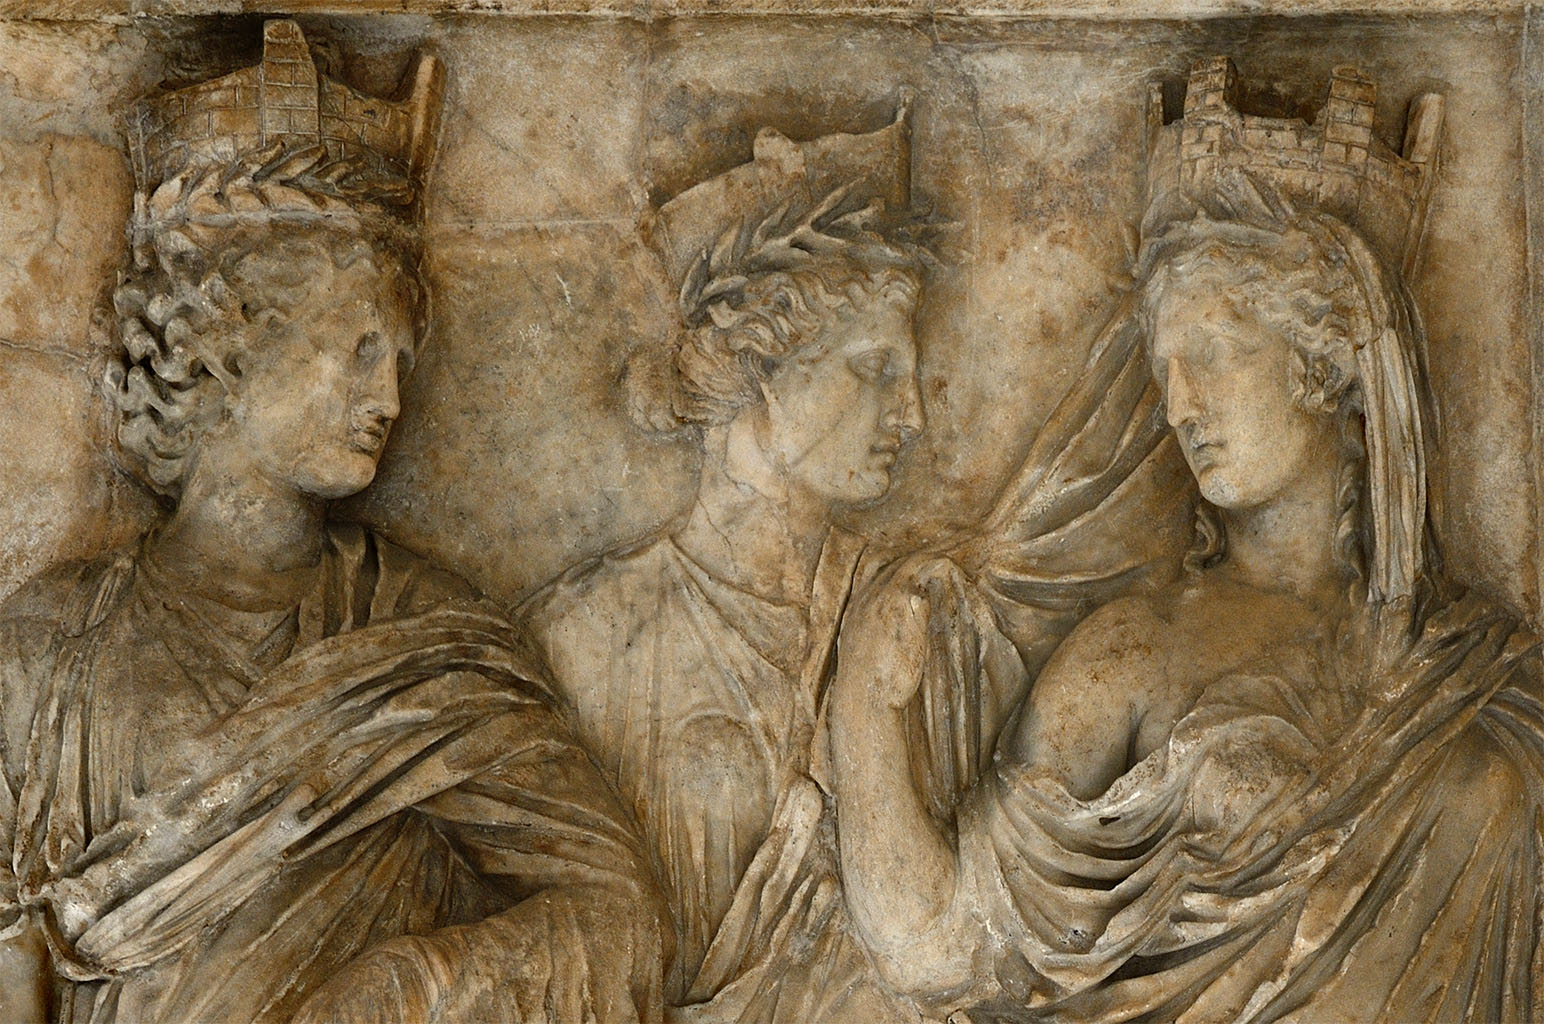 Three Tyches (close-up). Marble. Ca. 160 CE. Inv. No. Ma 590. Paris, Louvre Museum